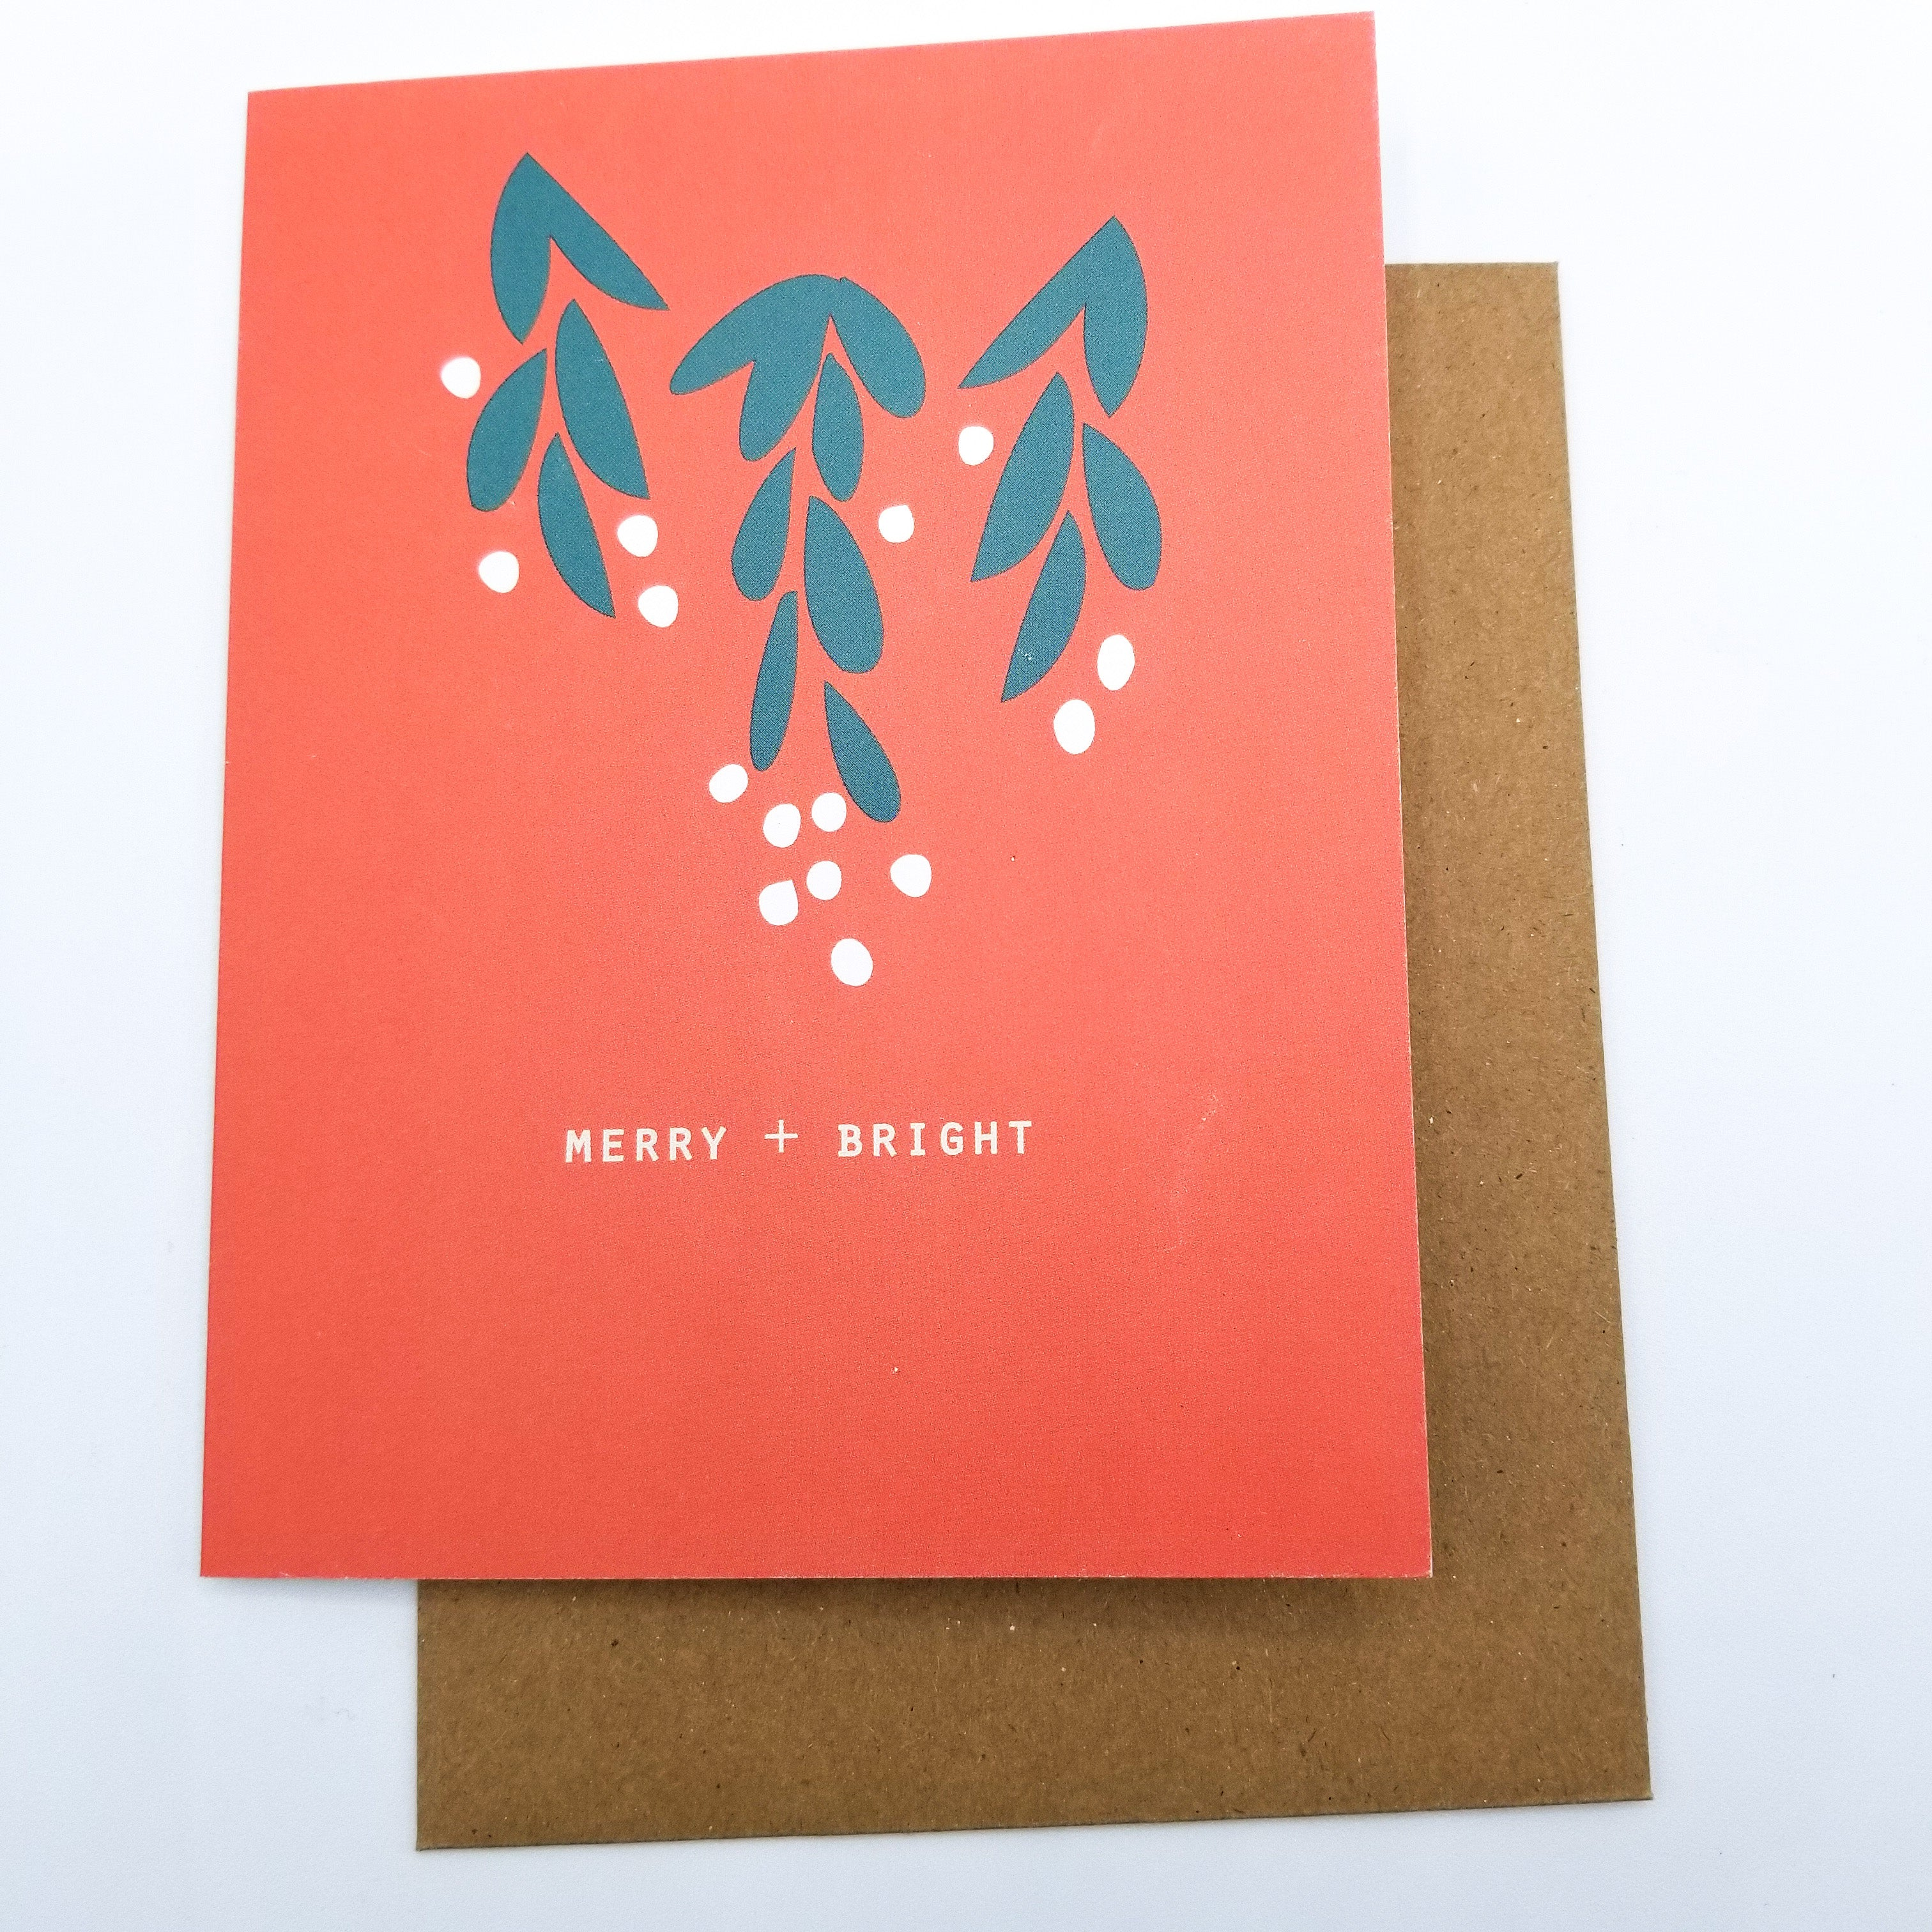 Merry + Bright Greeting Card 4x5 by Paper Canoe